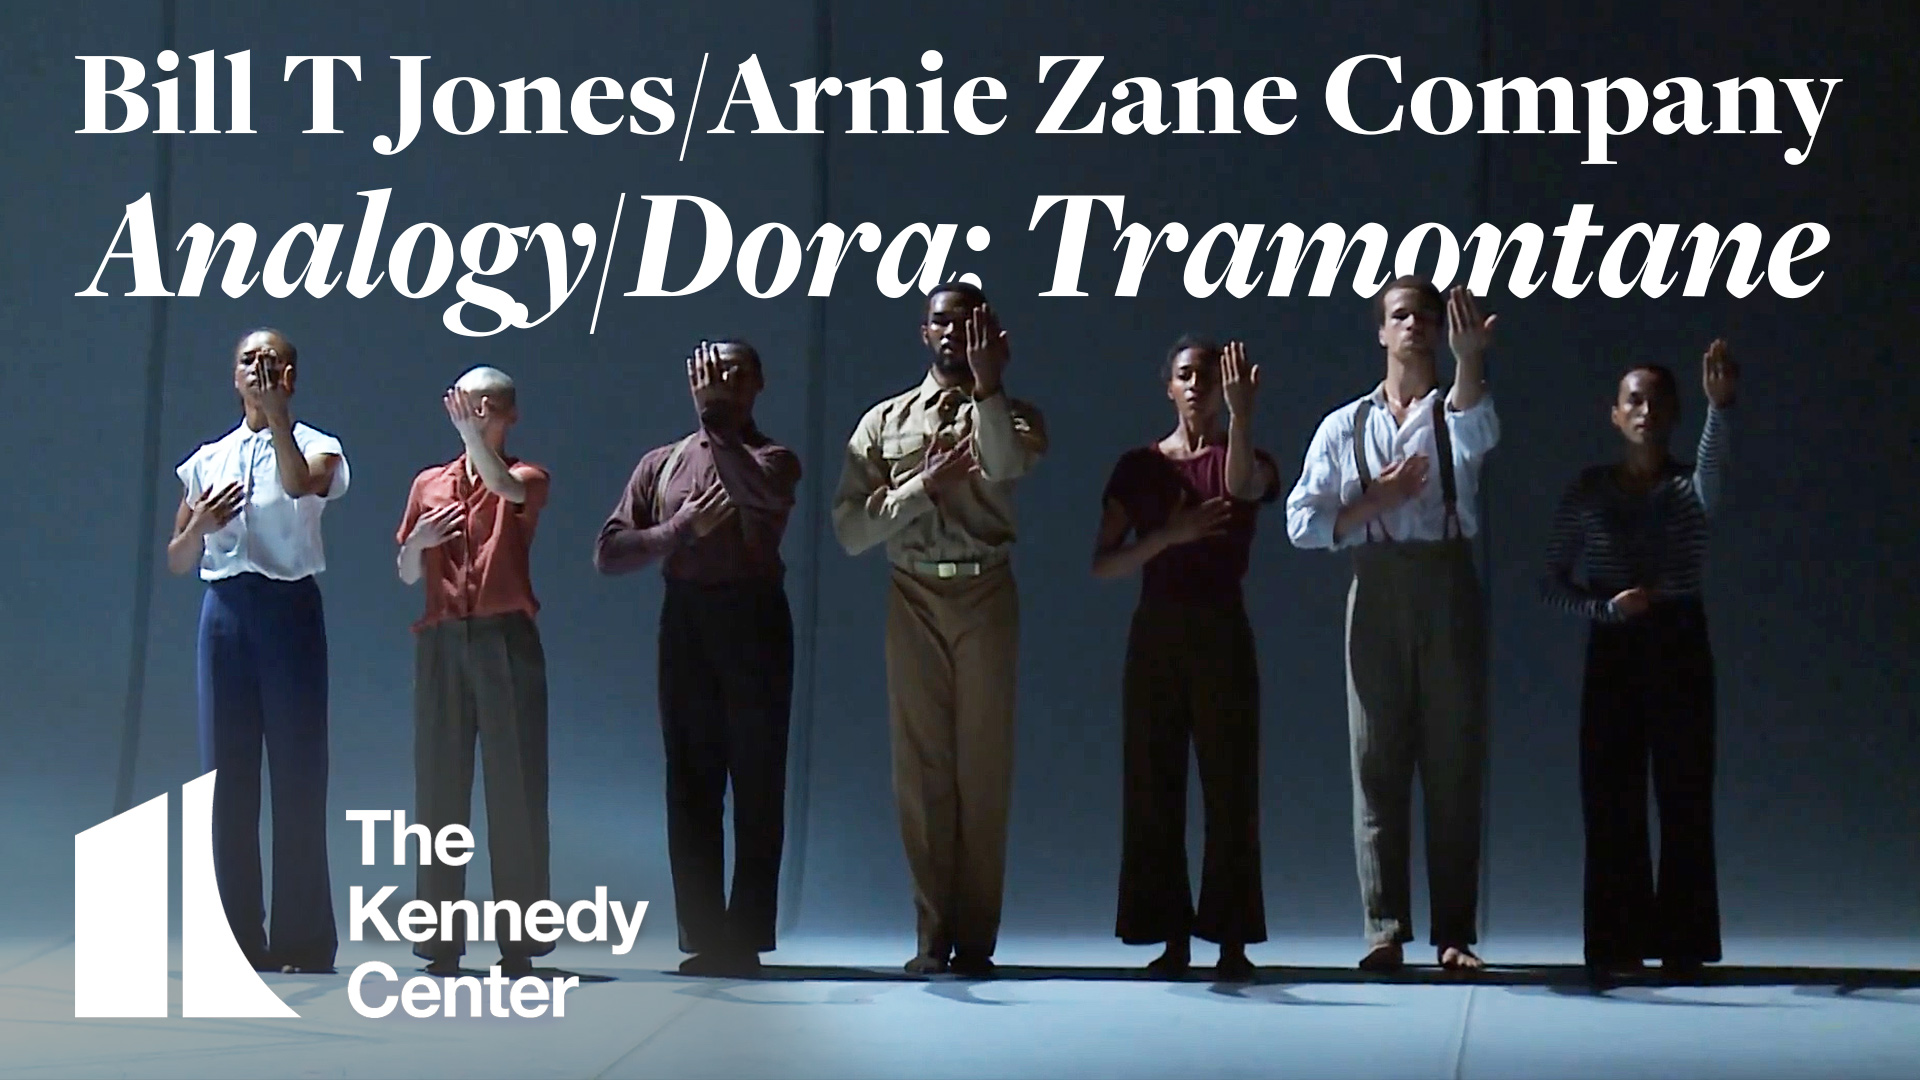 Bill T. Jones/Arnie Zane Company: Analogy/Dora: Tramontane | The Kennedy Center